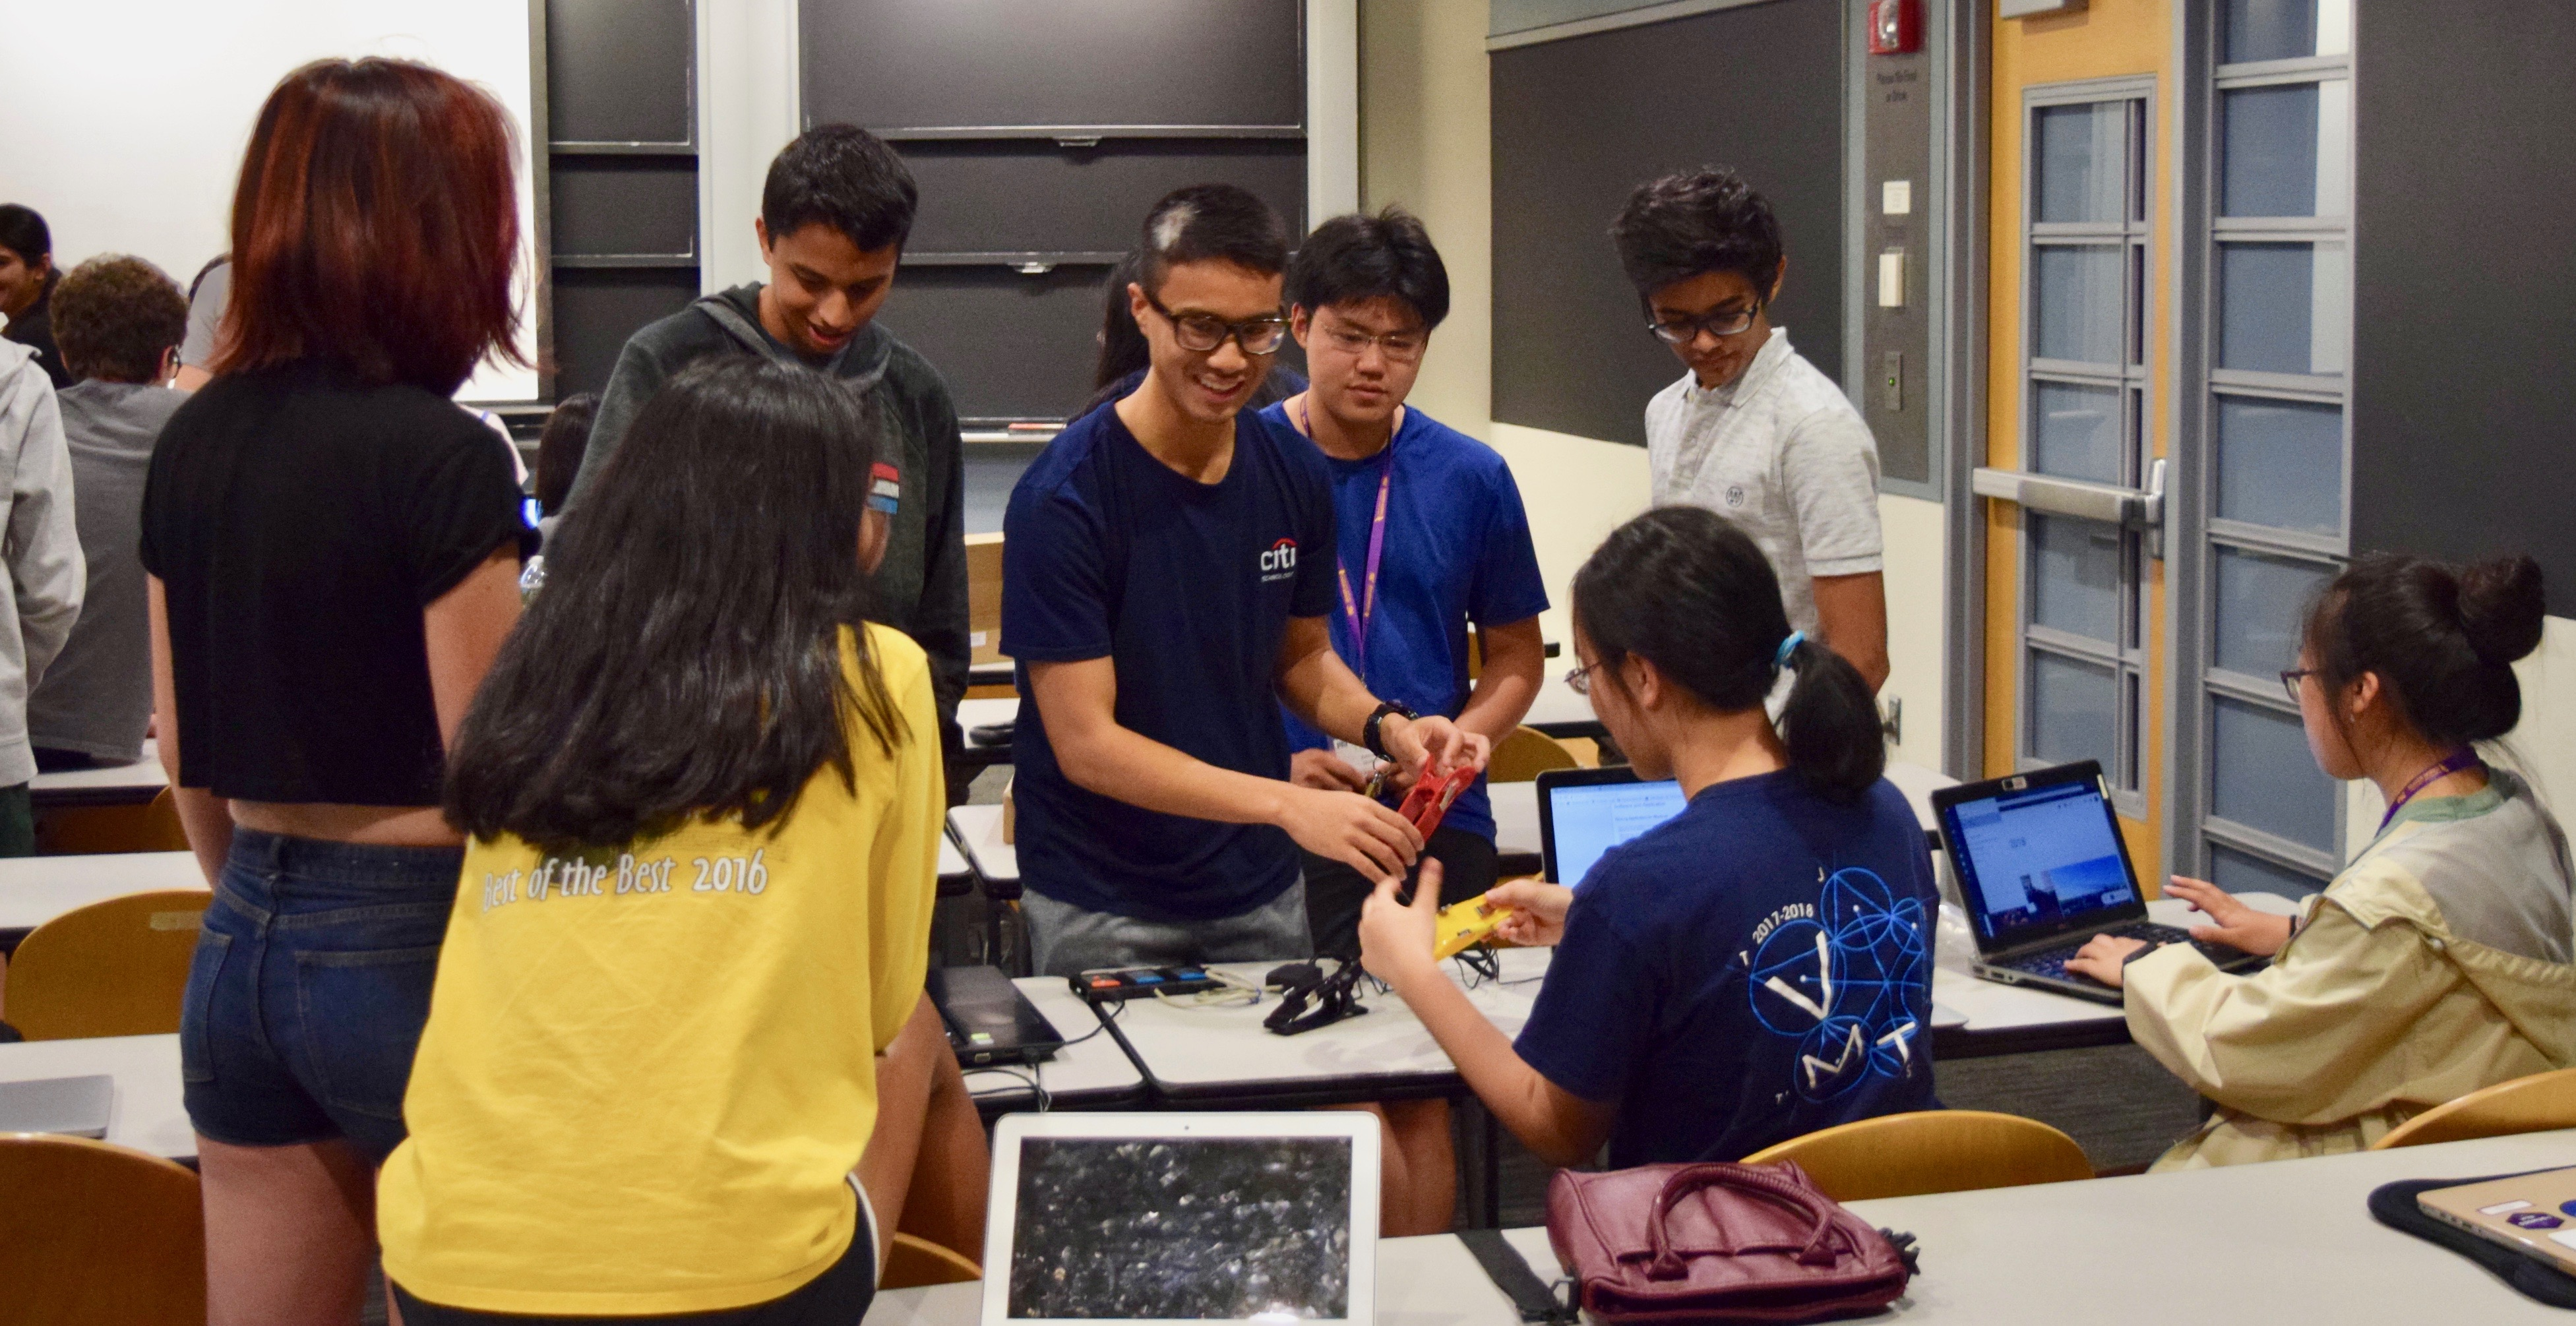 Summer Program - Technology | Beaver Works Summer Institute at MIT